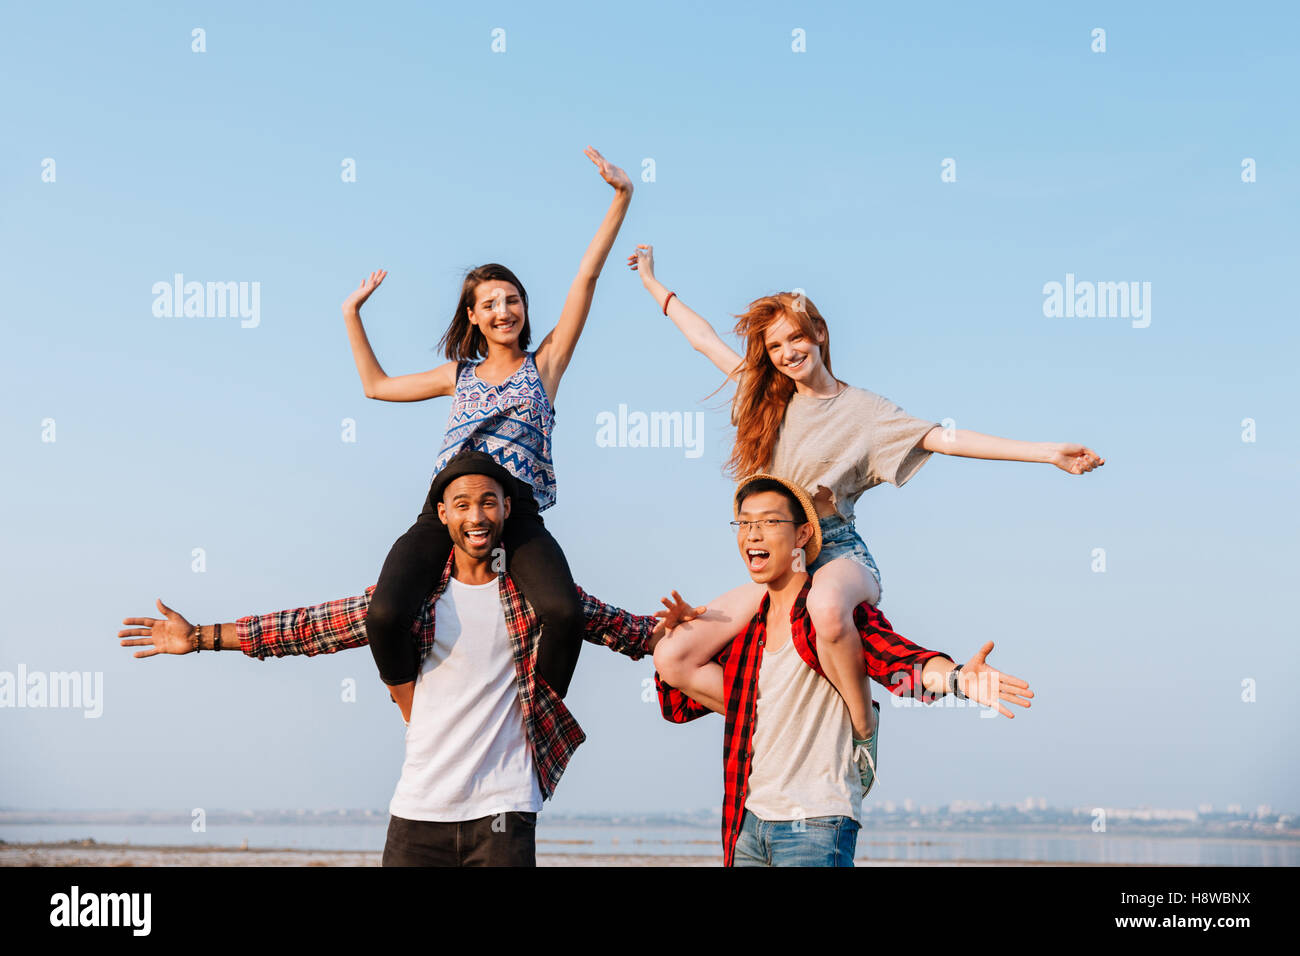 Two happy young women sitting on shoulders of their boyfriends and having fun outdoors - Stock Image